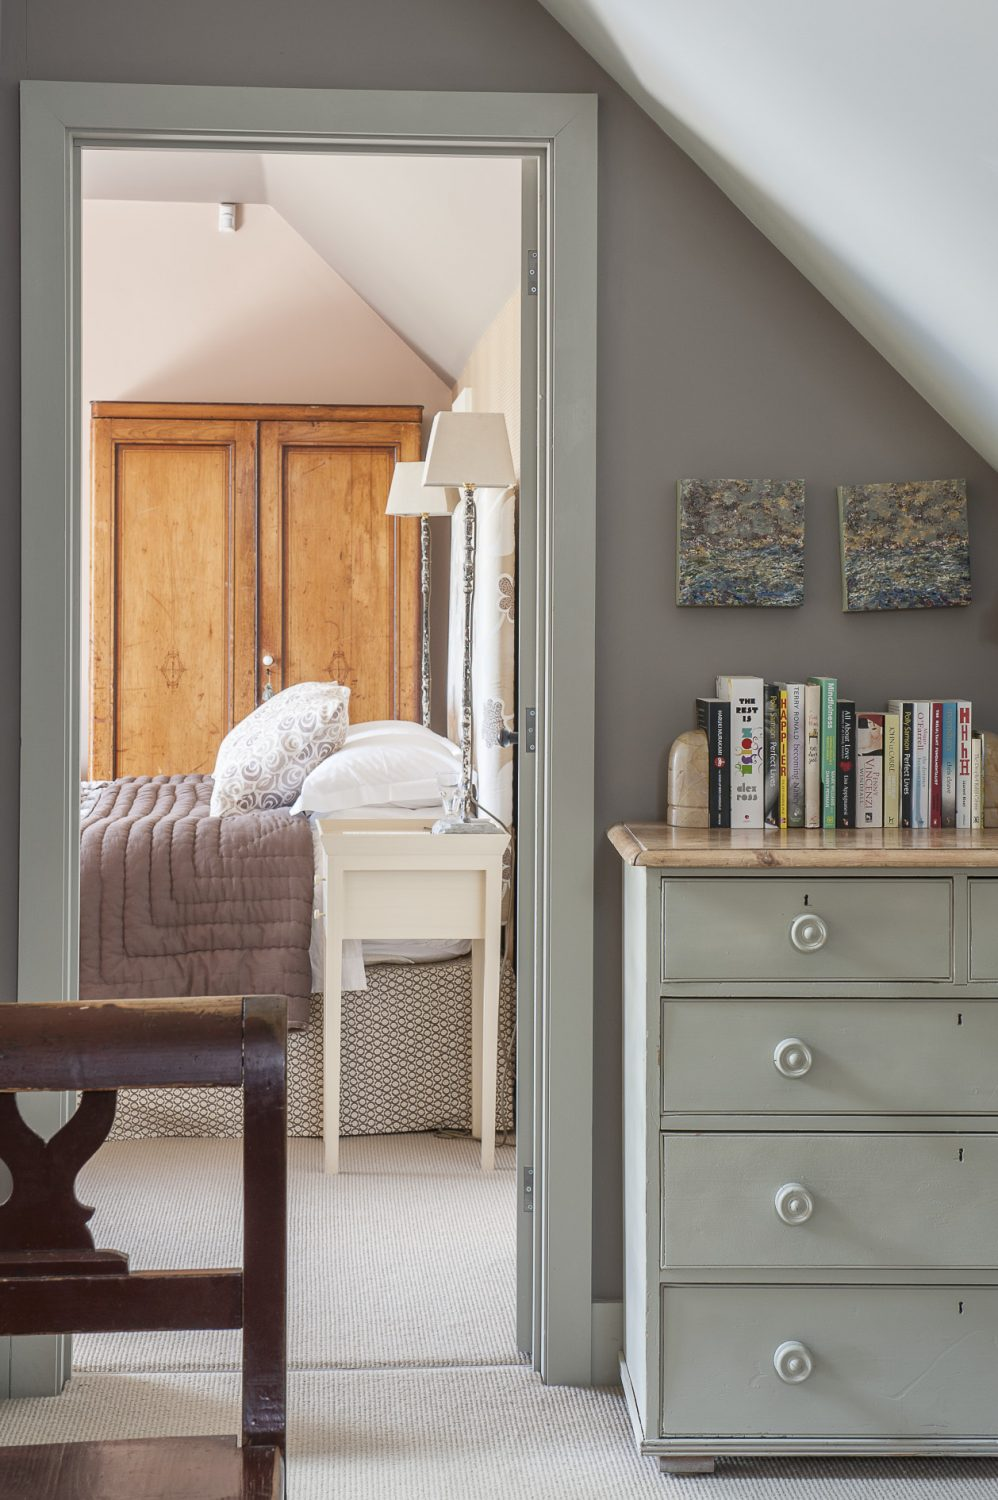 Doors lead off the spacious gallery/hallway into a guest bedroom, the master bedroom and a generously proportioned bathroom